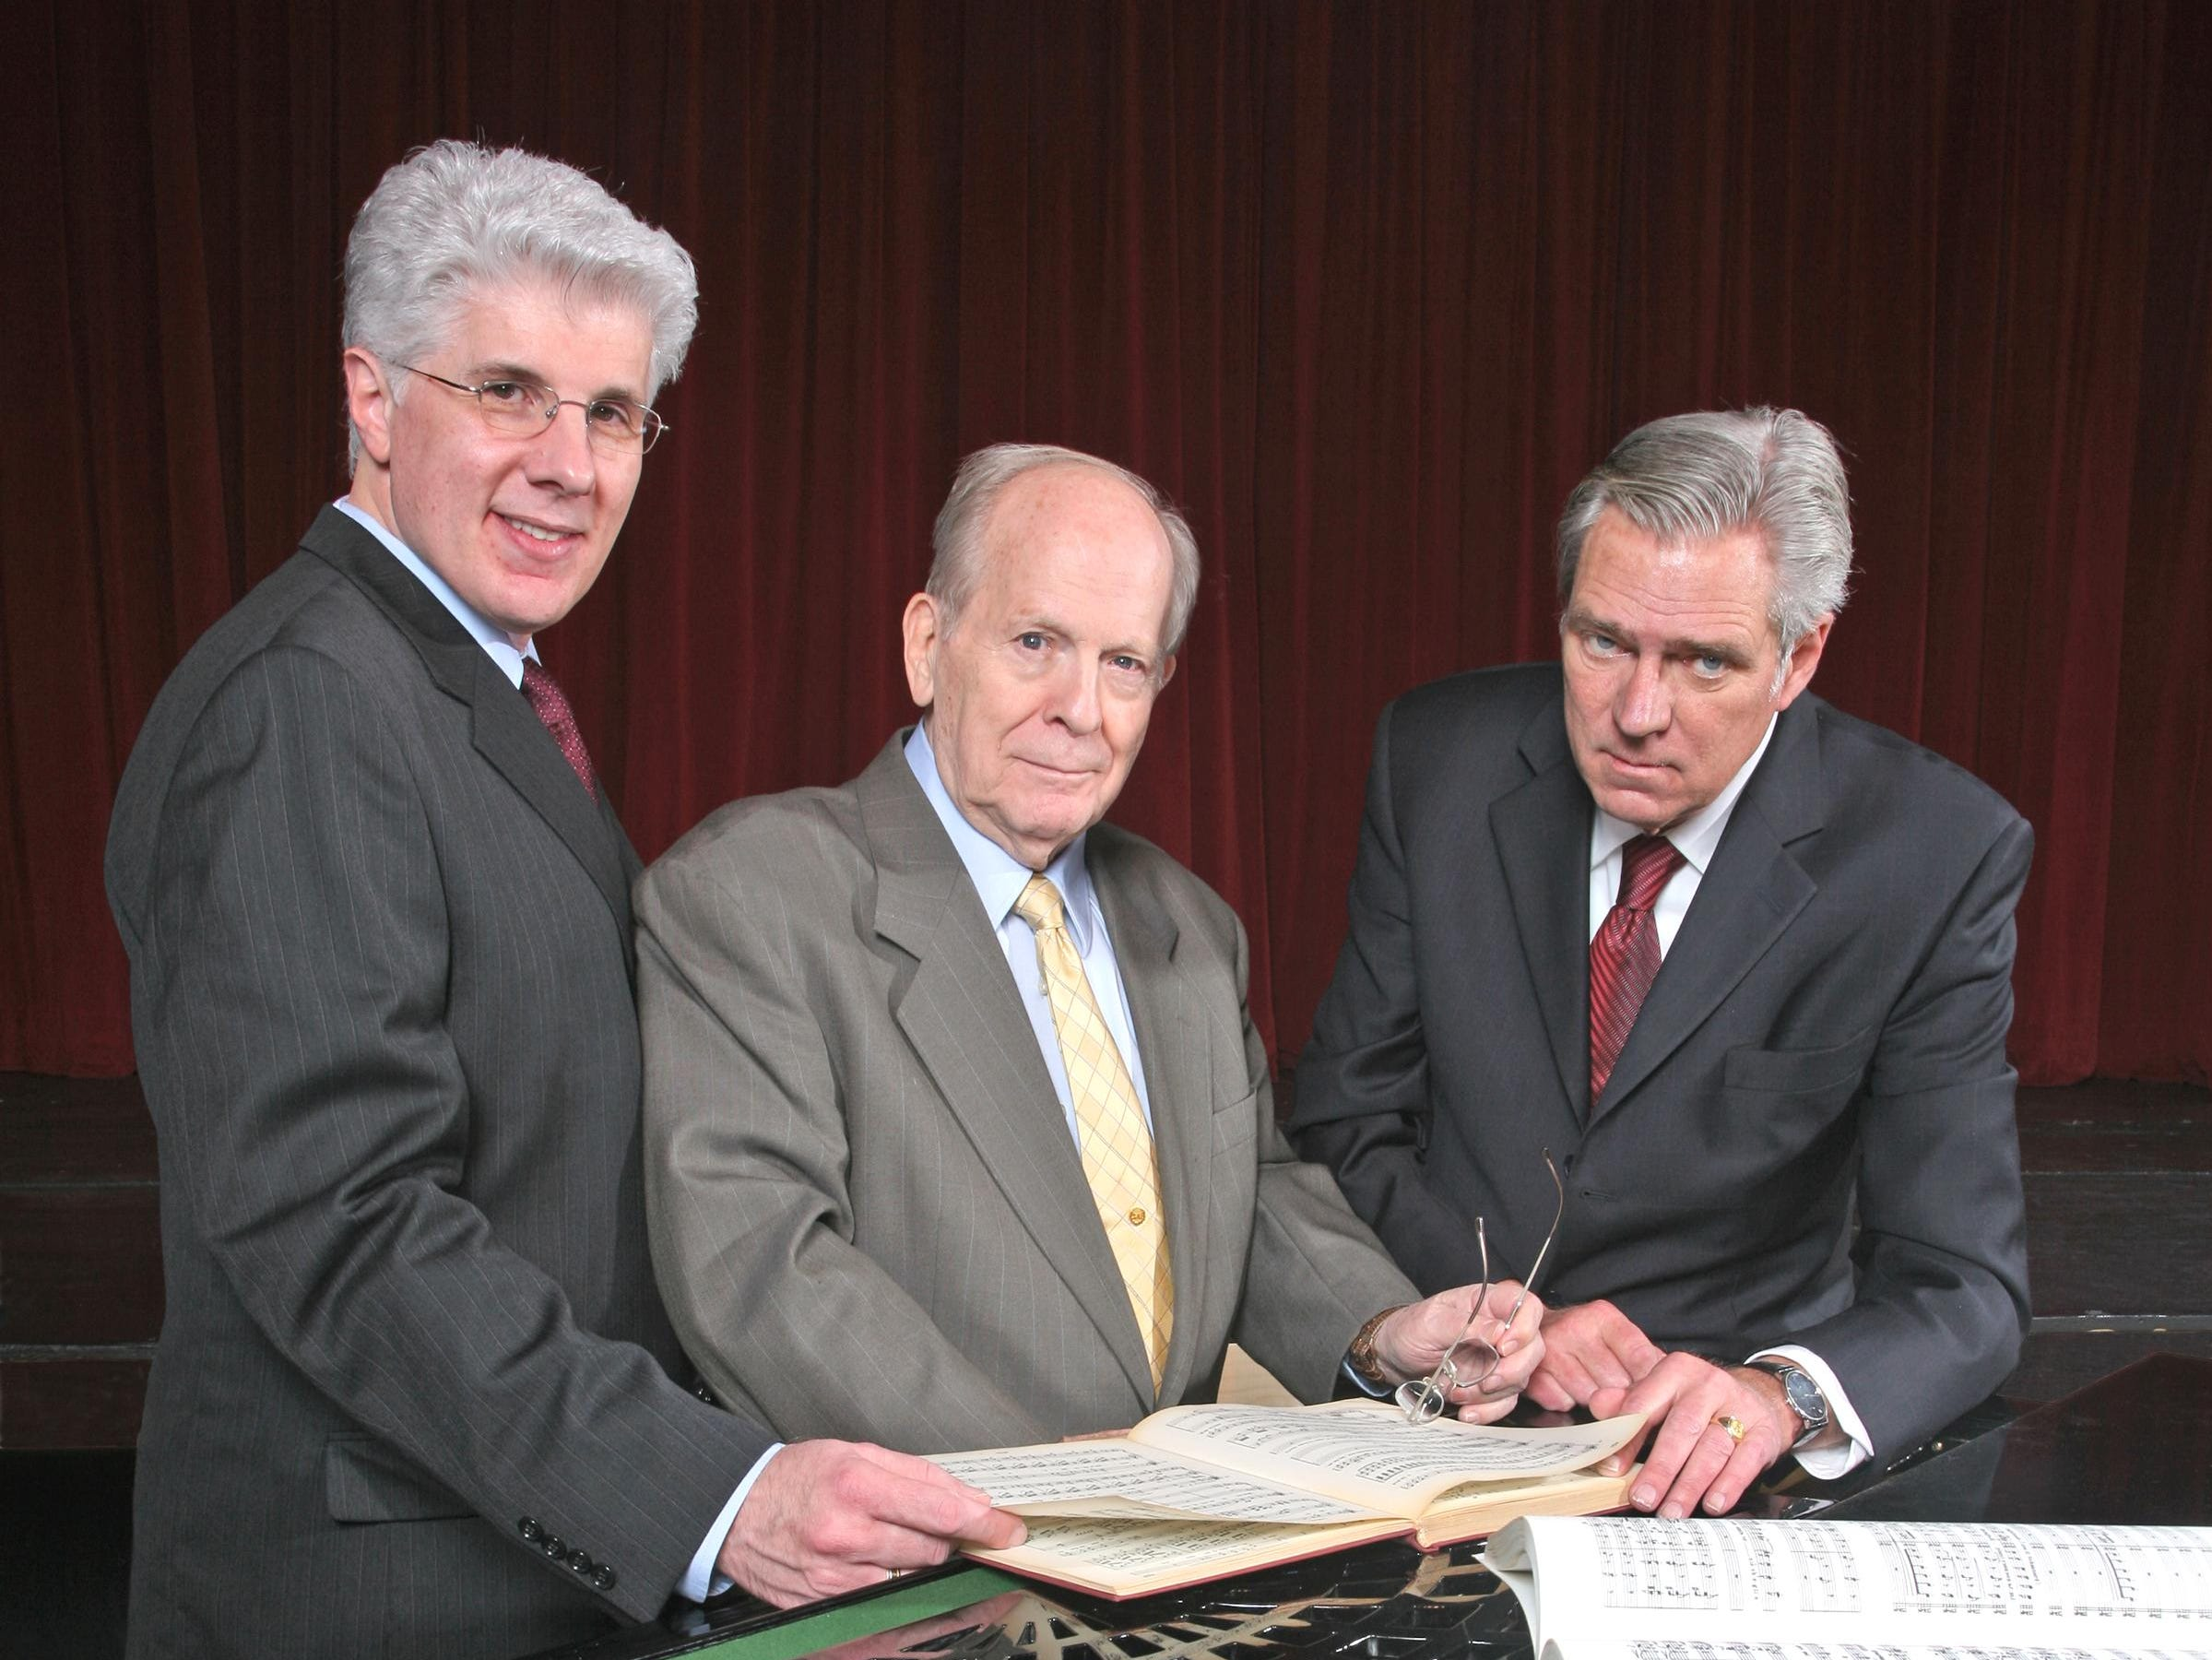 From left, Tri-Cities Opera's former artistic director Peter Sicilian, co-founder Peyton Hibbitt and senior artistic director Duane Skrabalak pictured in 2009.